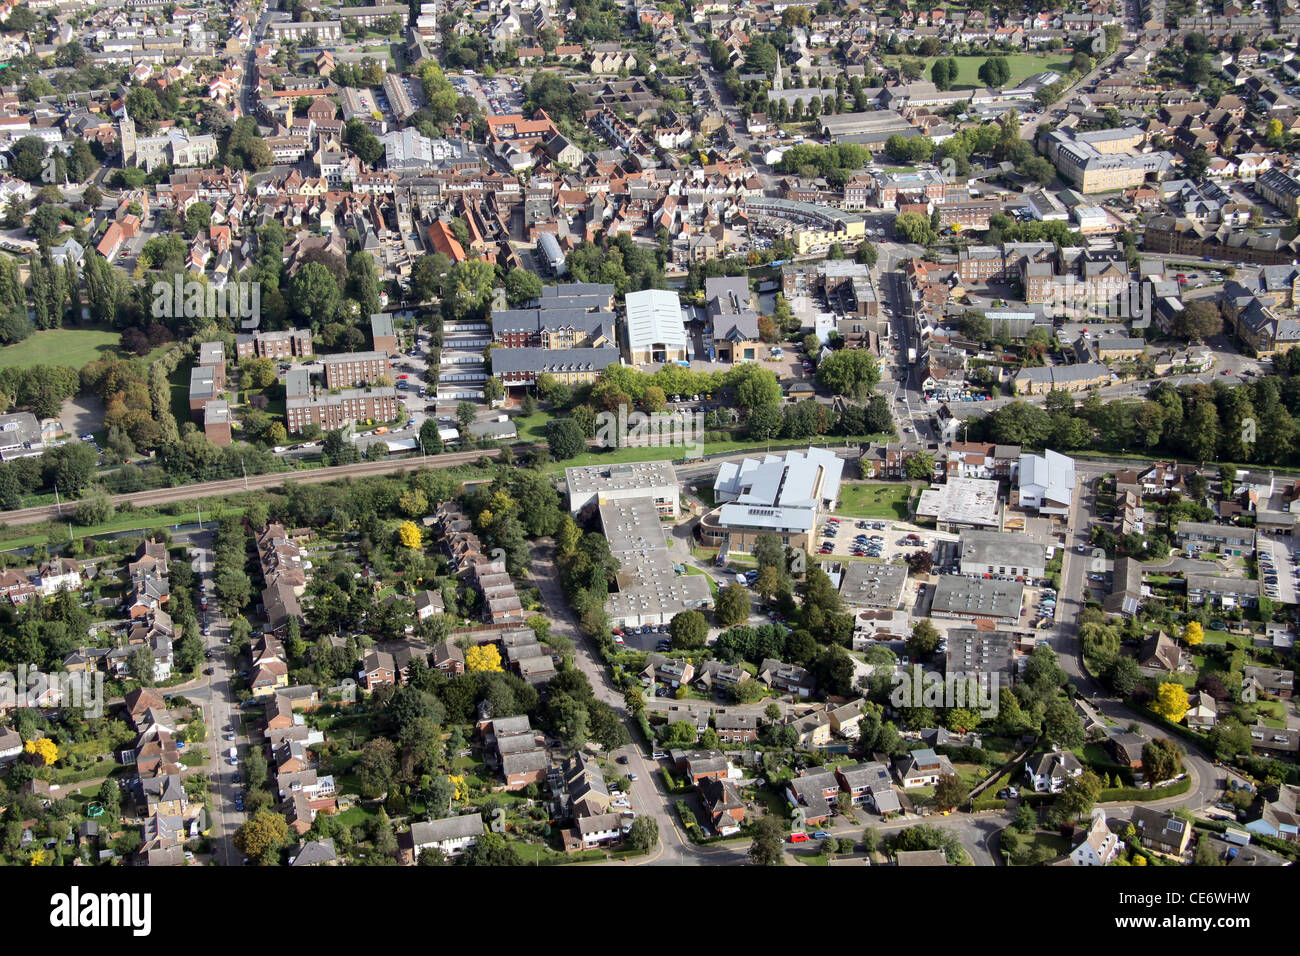 Aerial View of Hertford Regional College, Ware Campus with Ware town centre in the background - Stock Image